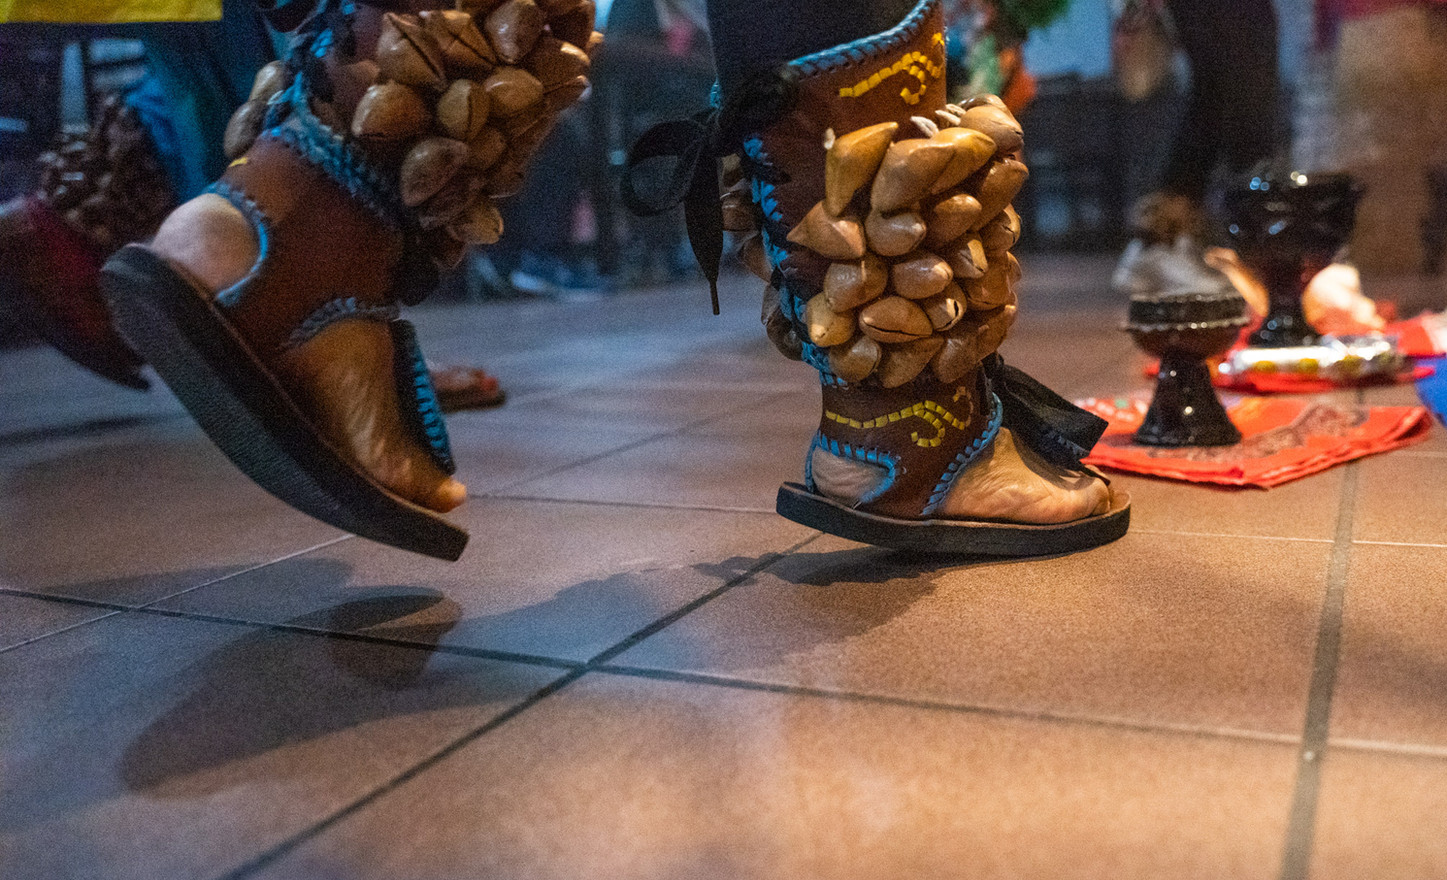 The coyoleras, shown here on a dancer's ankles, are made of ayoyotes shells from a chachayote tree which is common in Mexico.